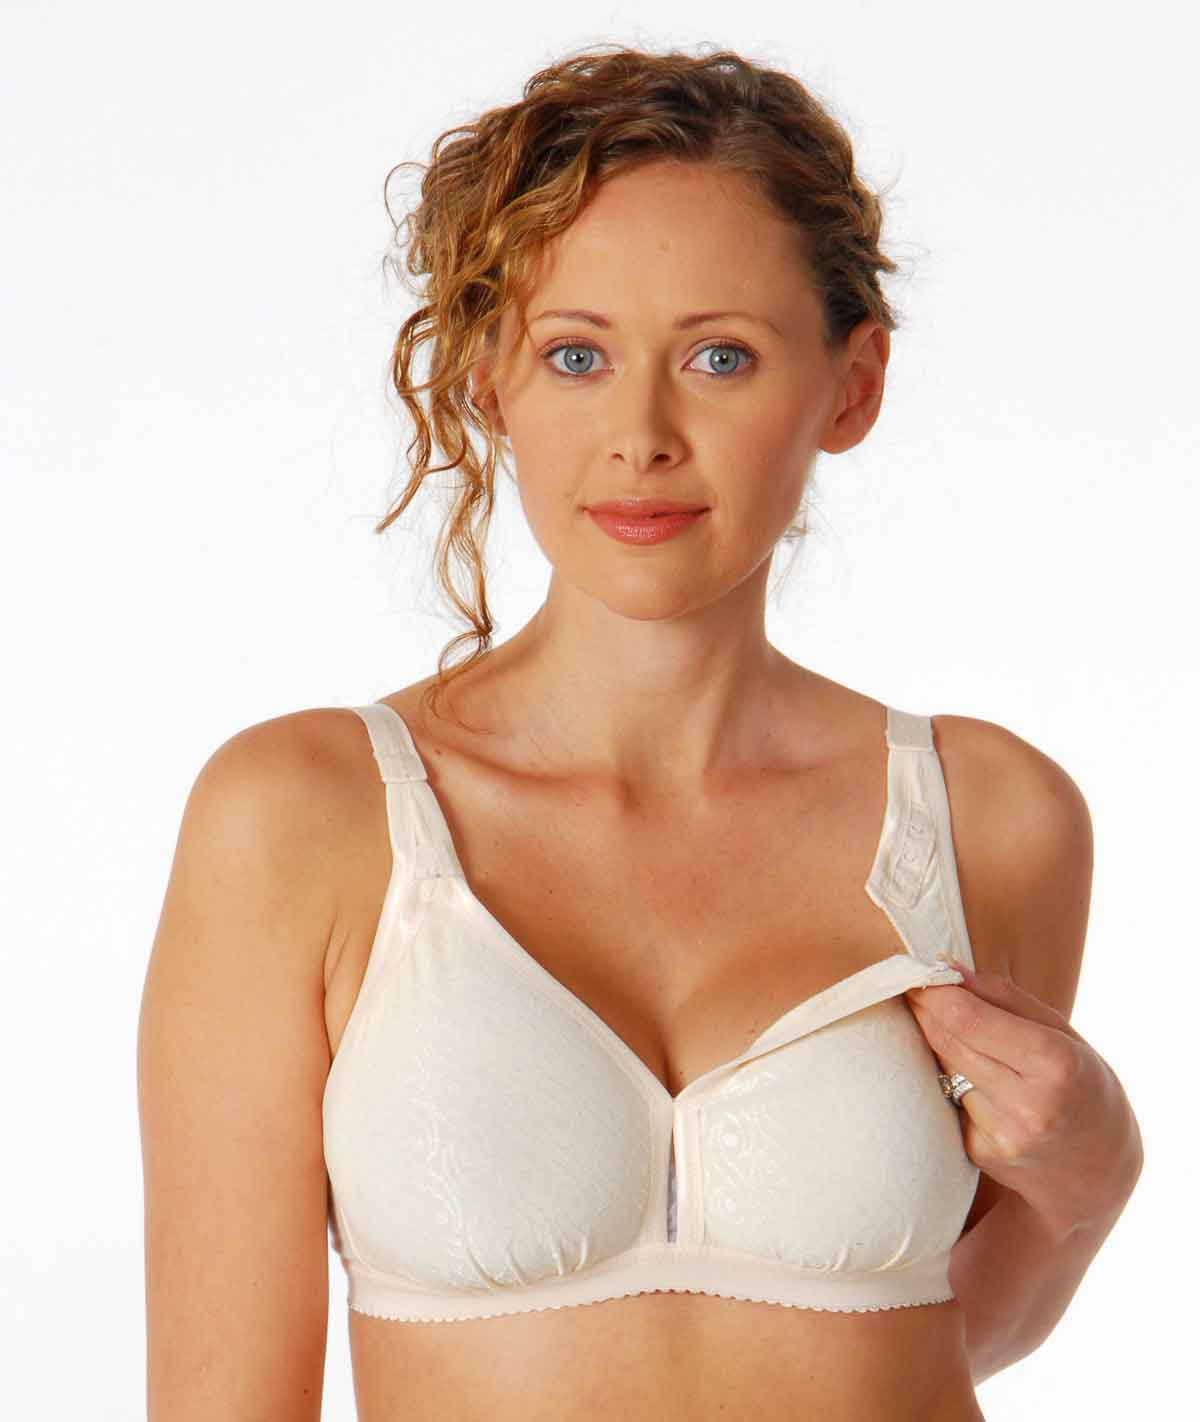 The 2x was equivalent to Soma's 40DD full coverage nursing bra. Maybe my boobs got bigger than most pregnant women's, but these (and other maternity bras) seemed to run a little small on me.